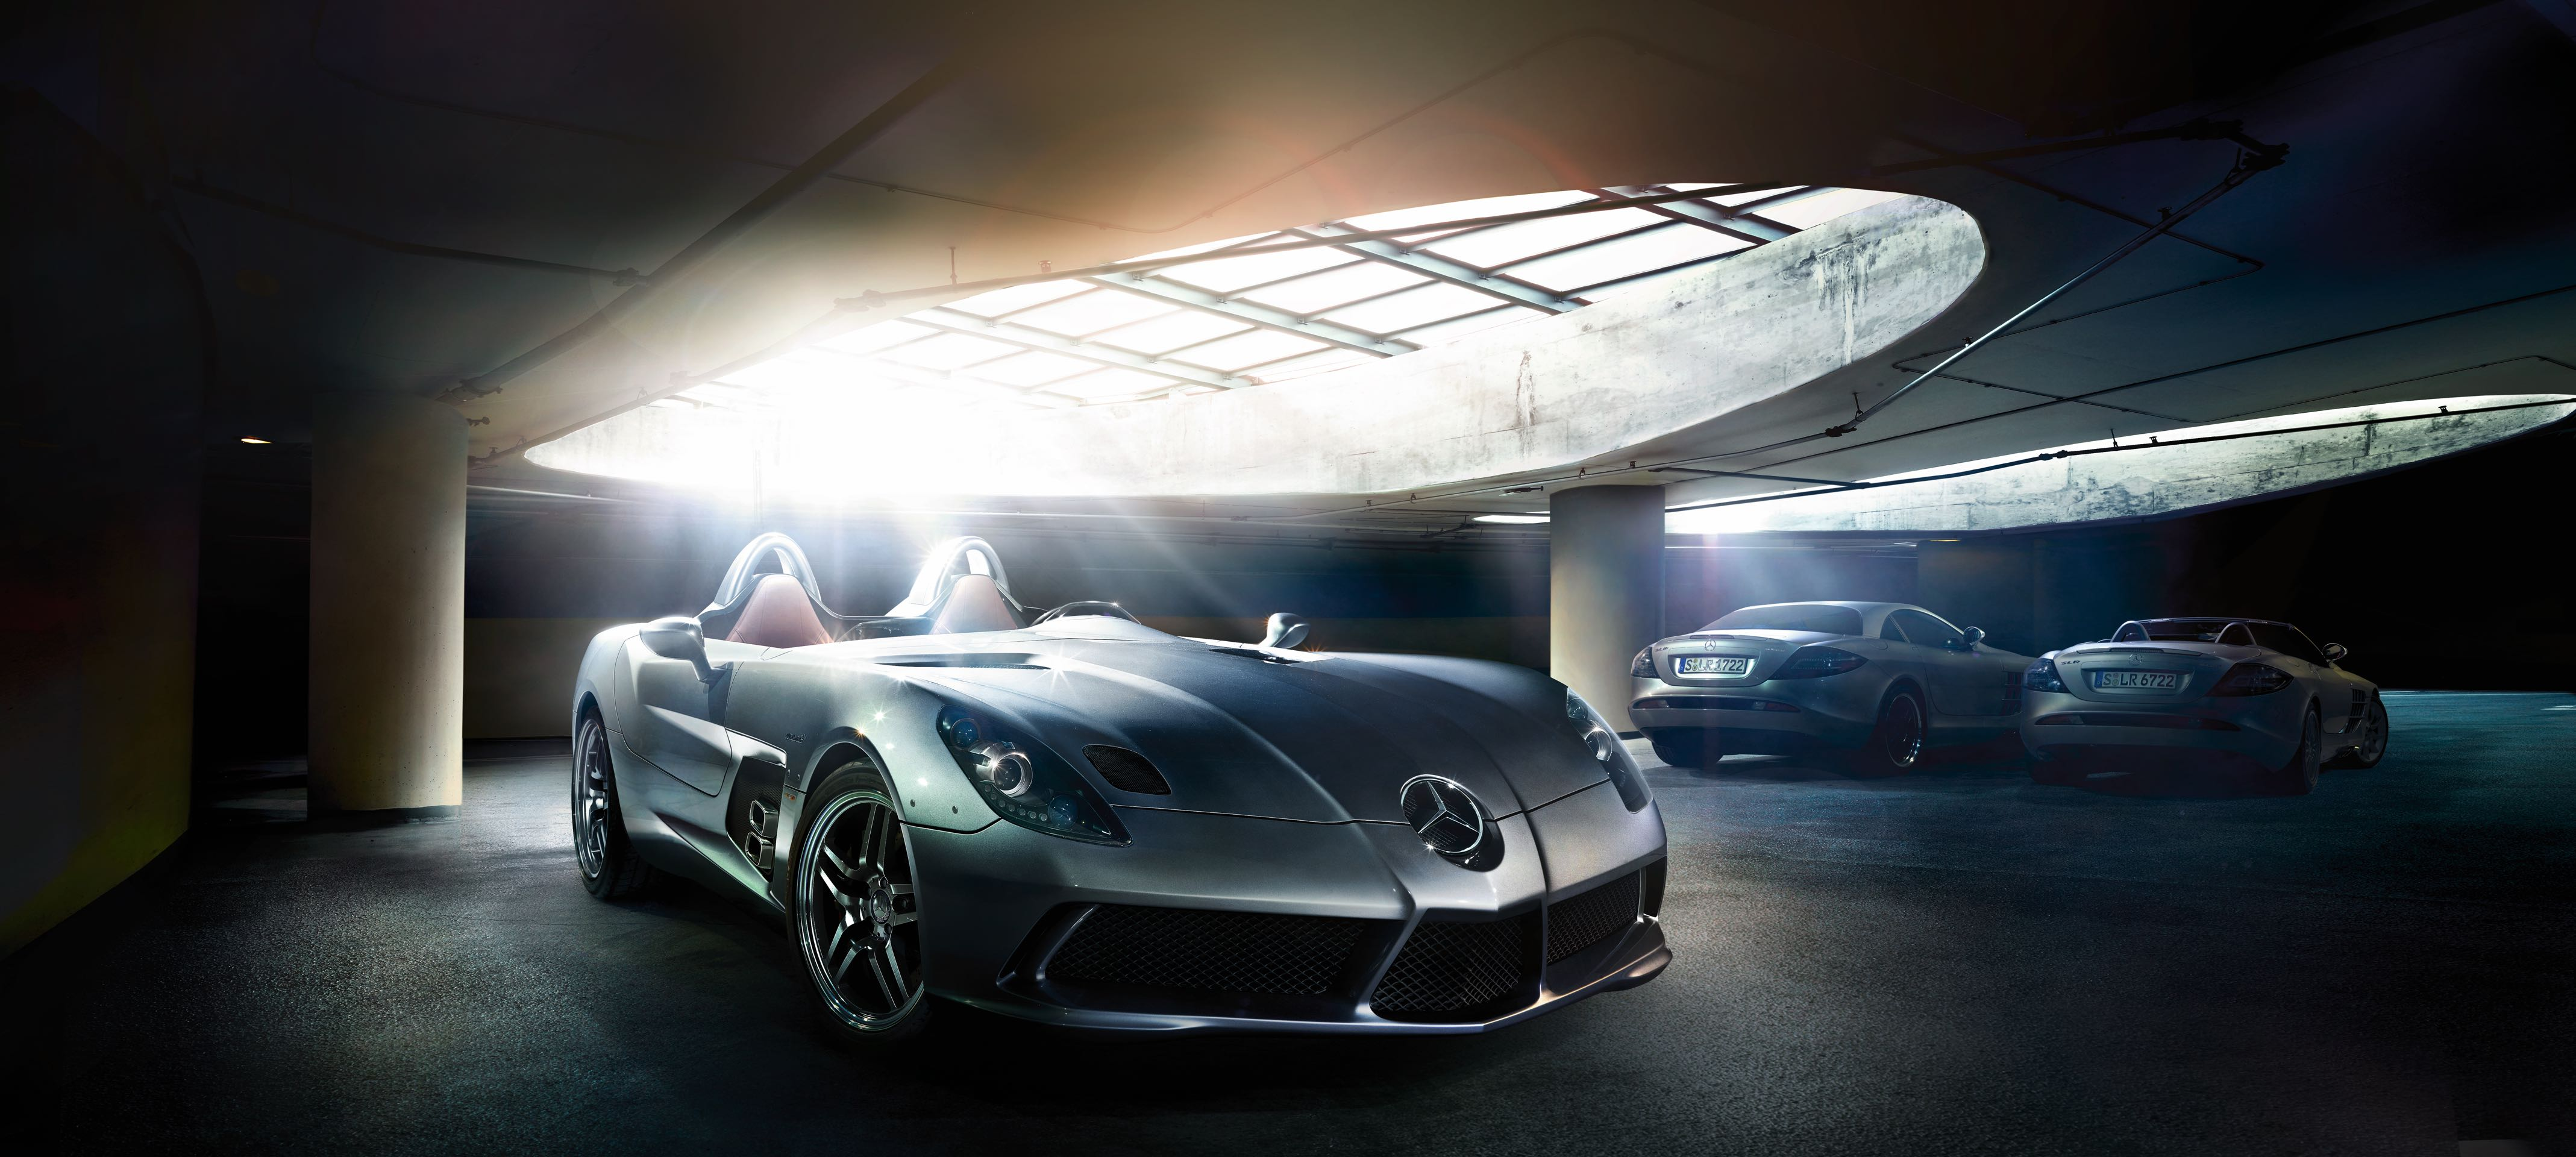 McLaren-Mercedes SLR Stirling Moss